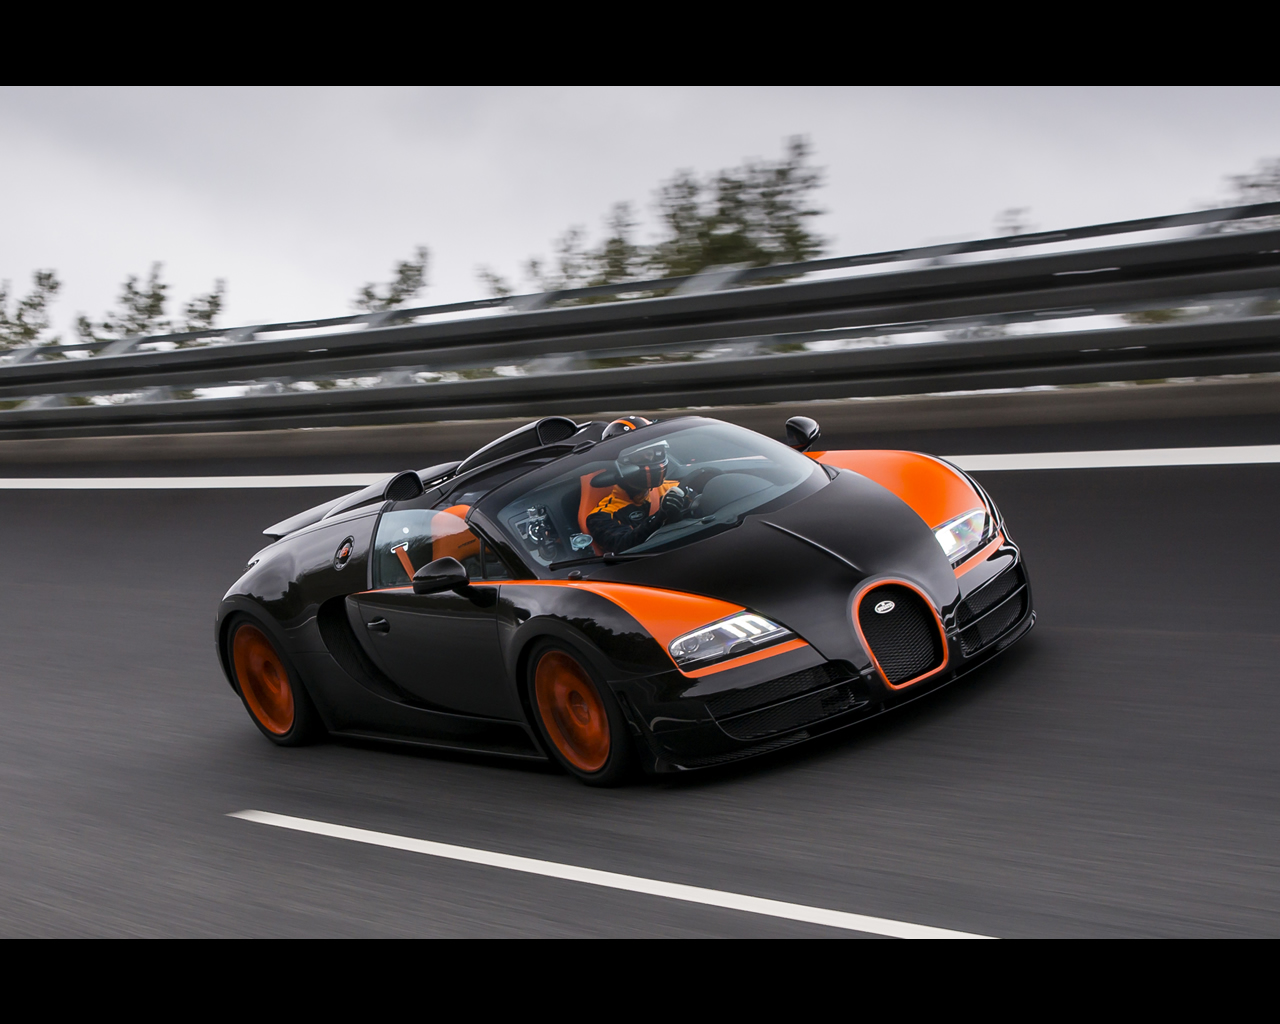 bugatti veyron grand sport vitesse nfs bugatti veyron. Black Bedroom Furniture Sets. Home Design Ideas